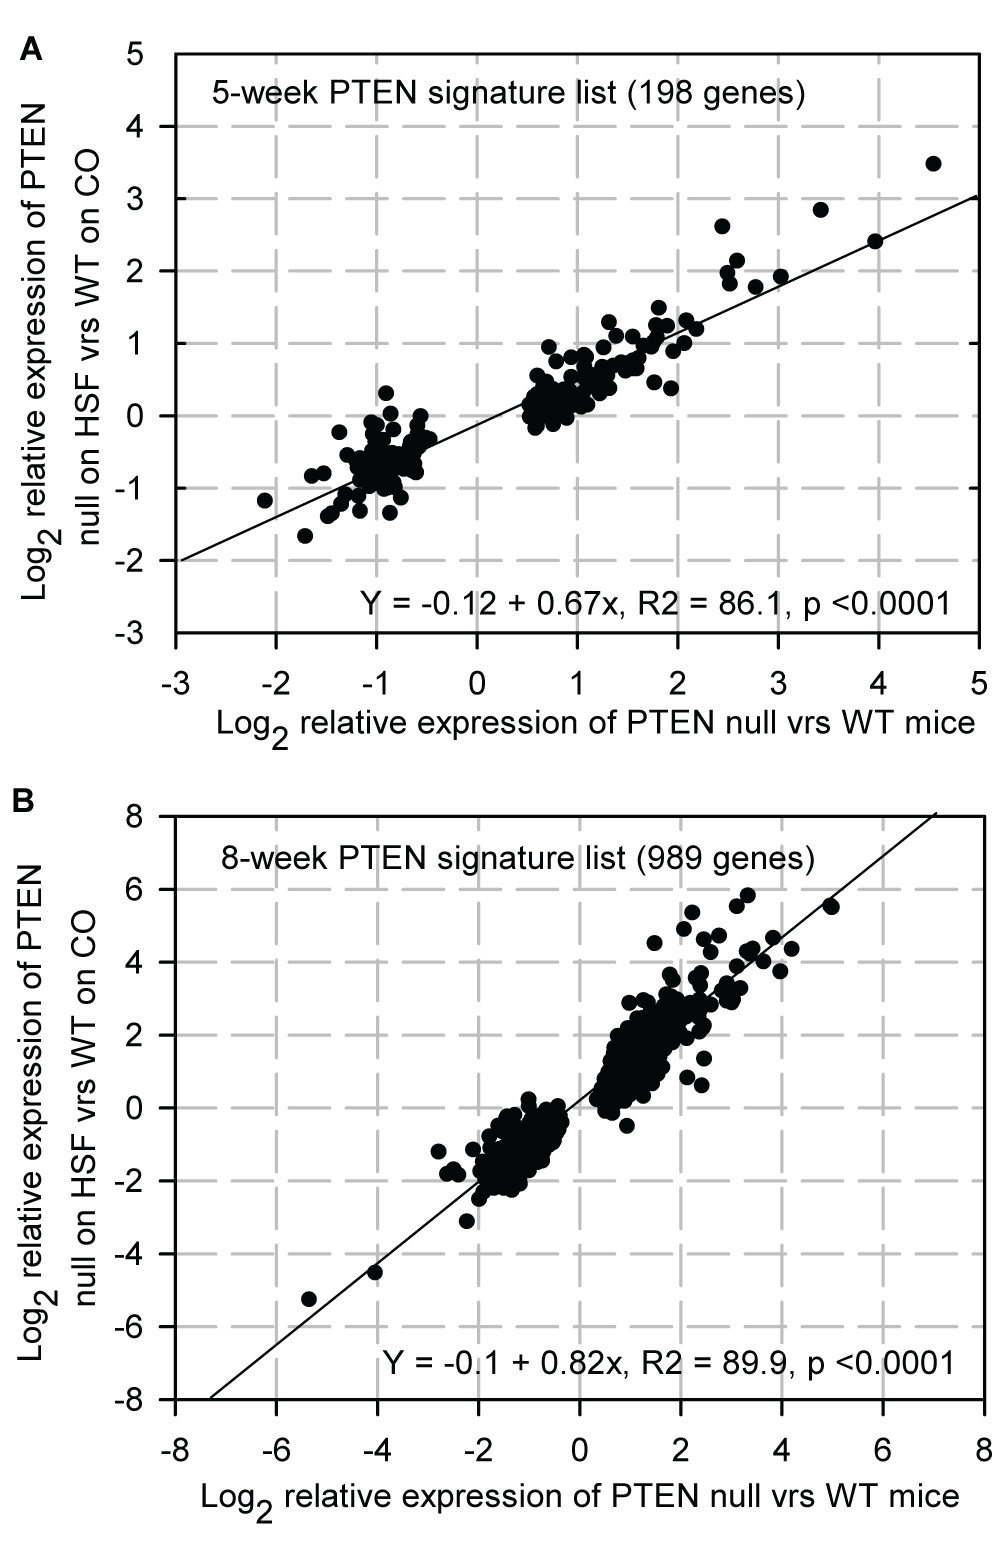 http://static-content.springer.com/image/art%3A10.1186%2F1476-4598-9-189/MediaObjects/12943_2010_Article_704_Fig10_HTML.jpg